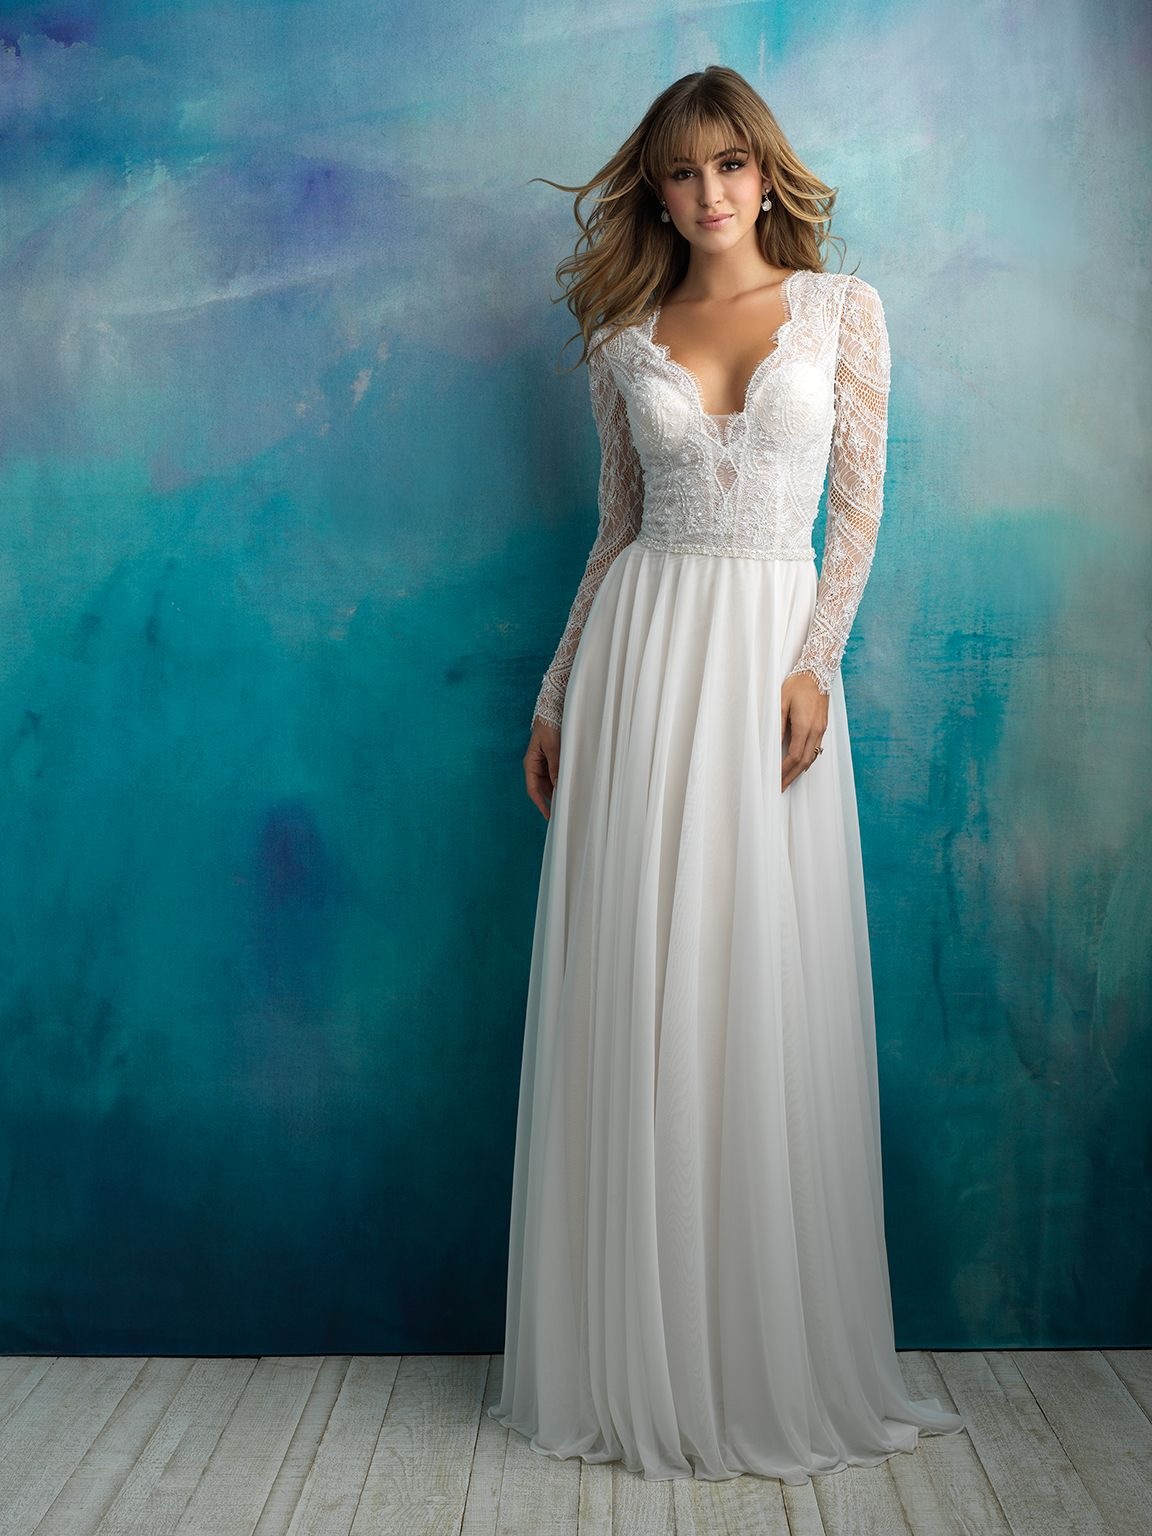 f328b480357 TRUNK SHOW GOWN   Allure Bridal. Style  9515 - Sample size 12!